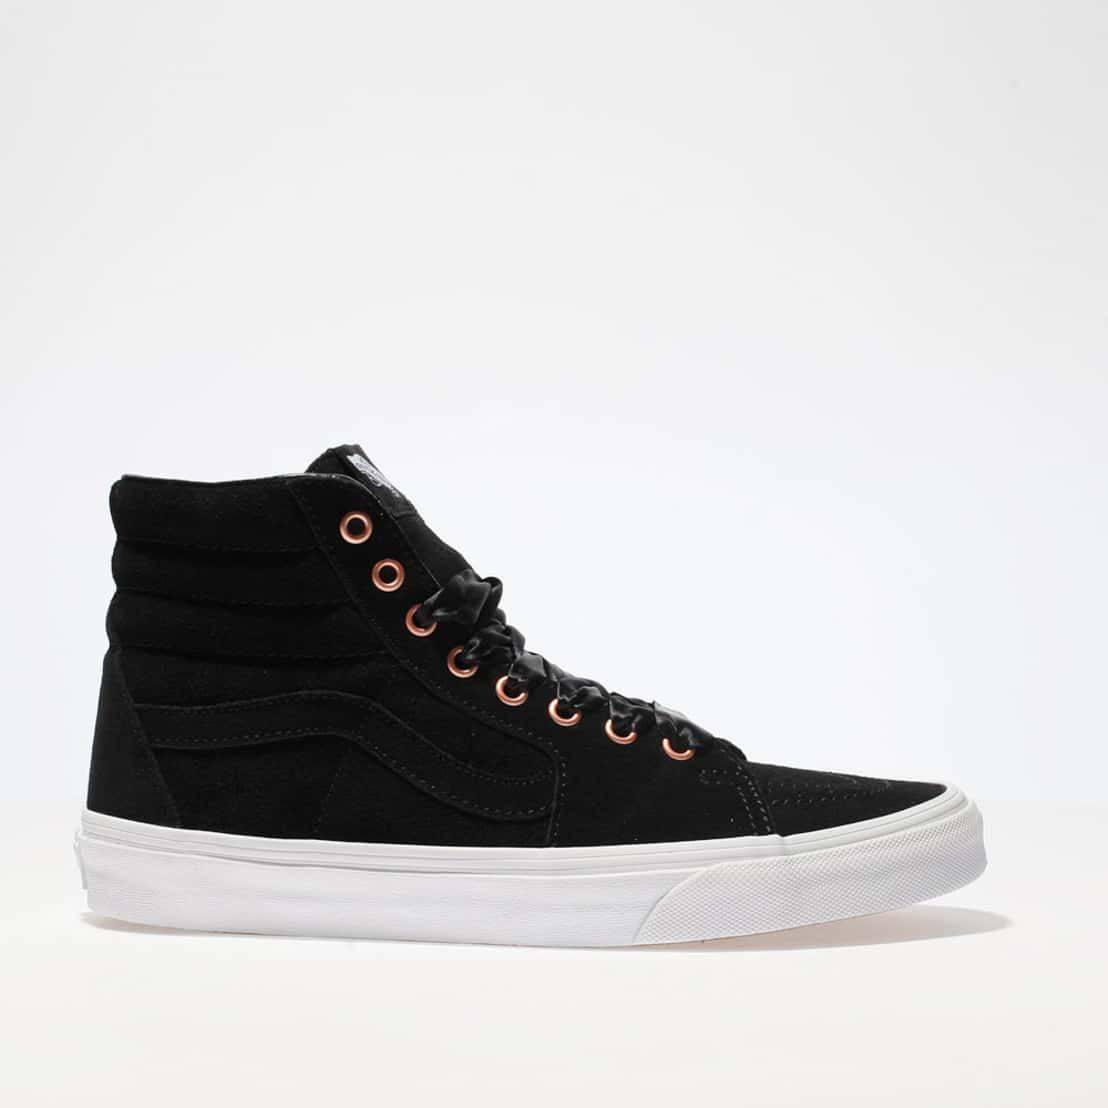 daae84351b5 Black   rose gold vans sk8-hi trainers exclusive to schuh